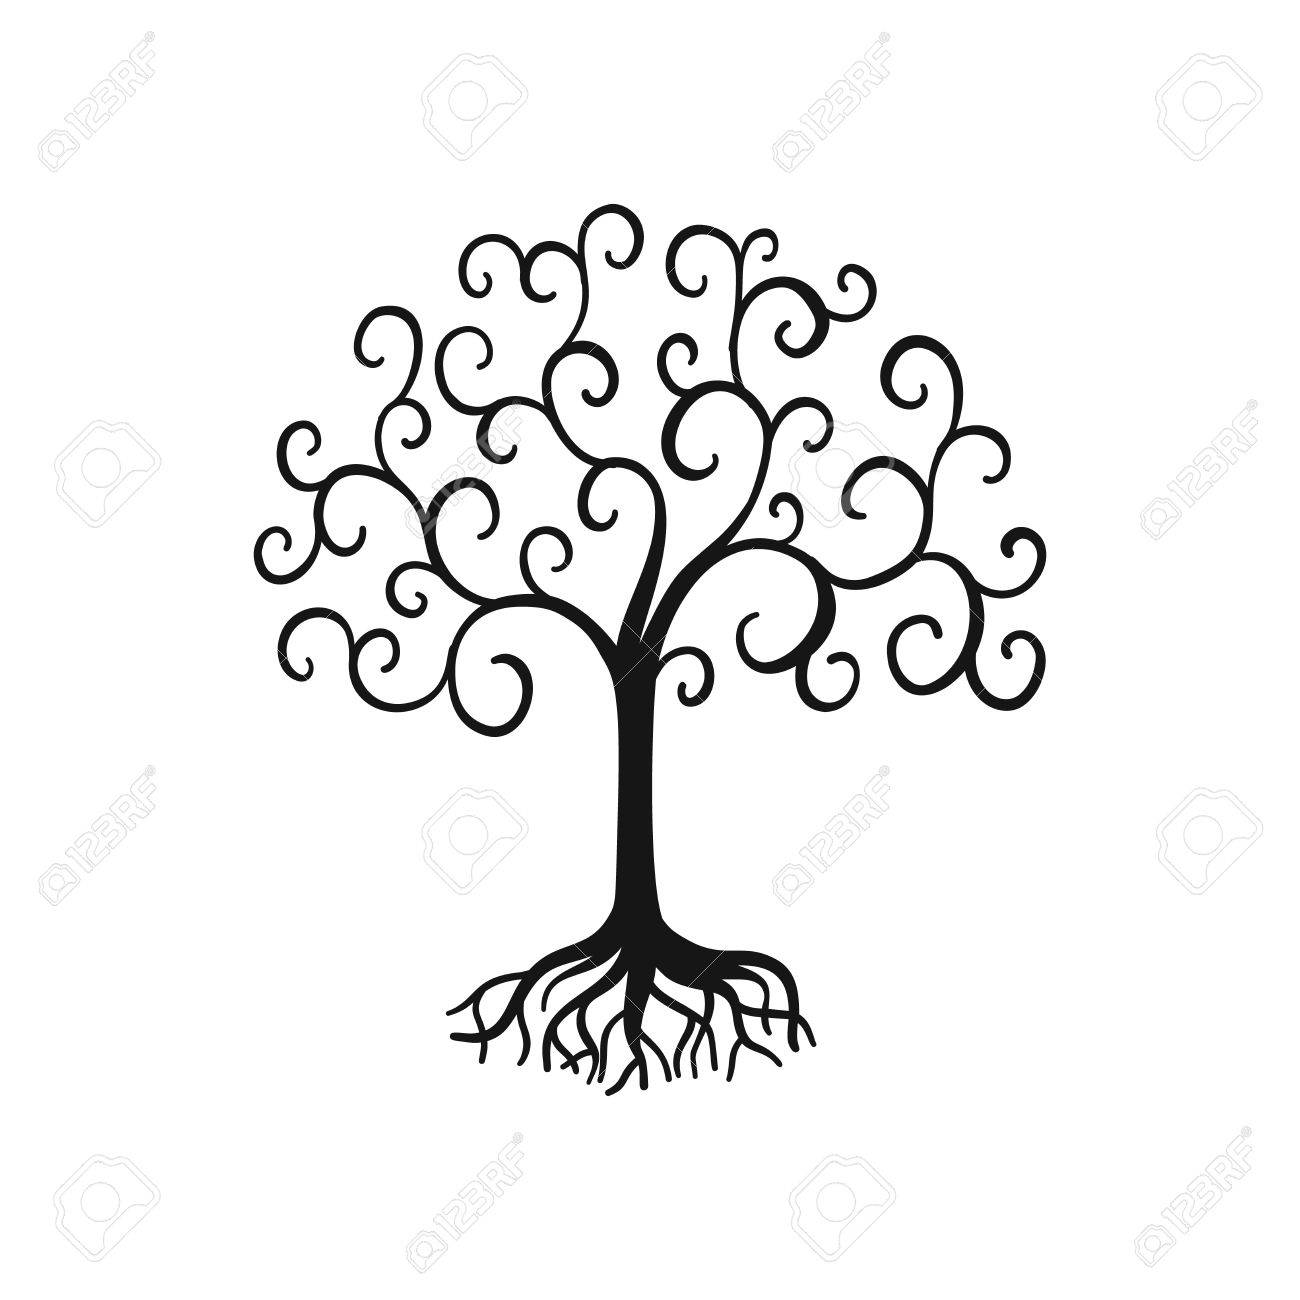 vector tree of life royalty free cliparts vectors and stock rh 123rf com tree life vectoriel tree of life vector equilibrium vortex